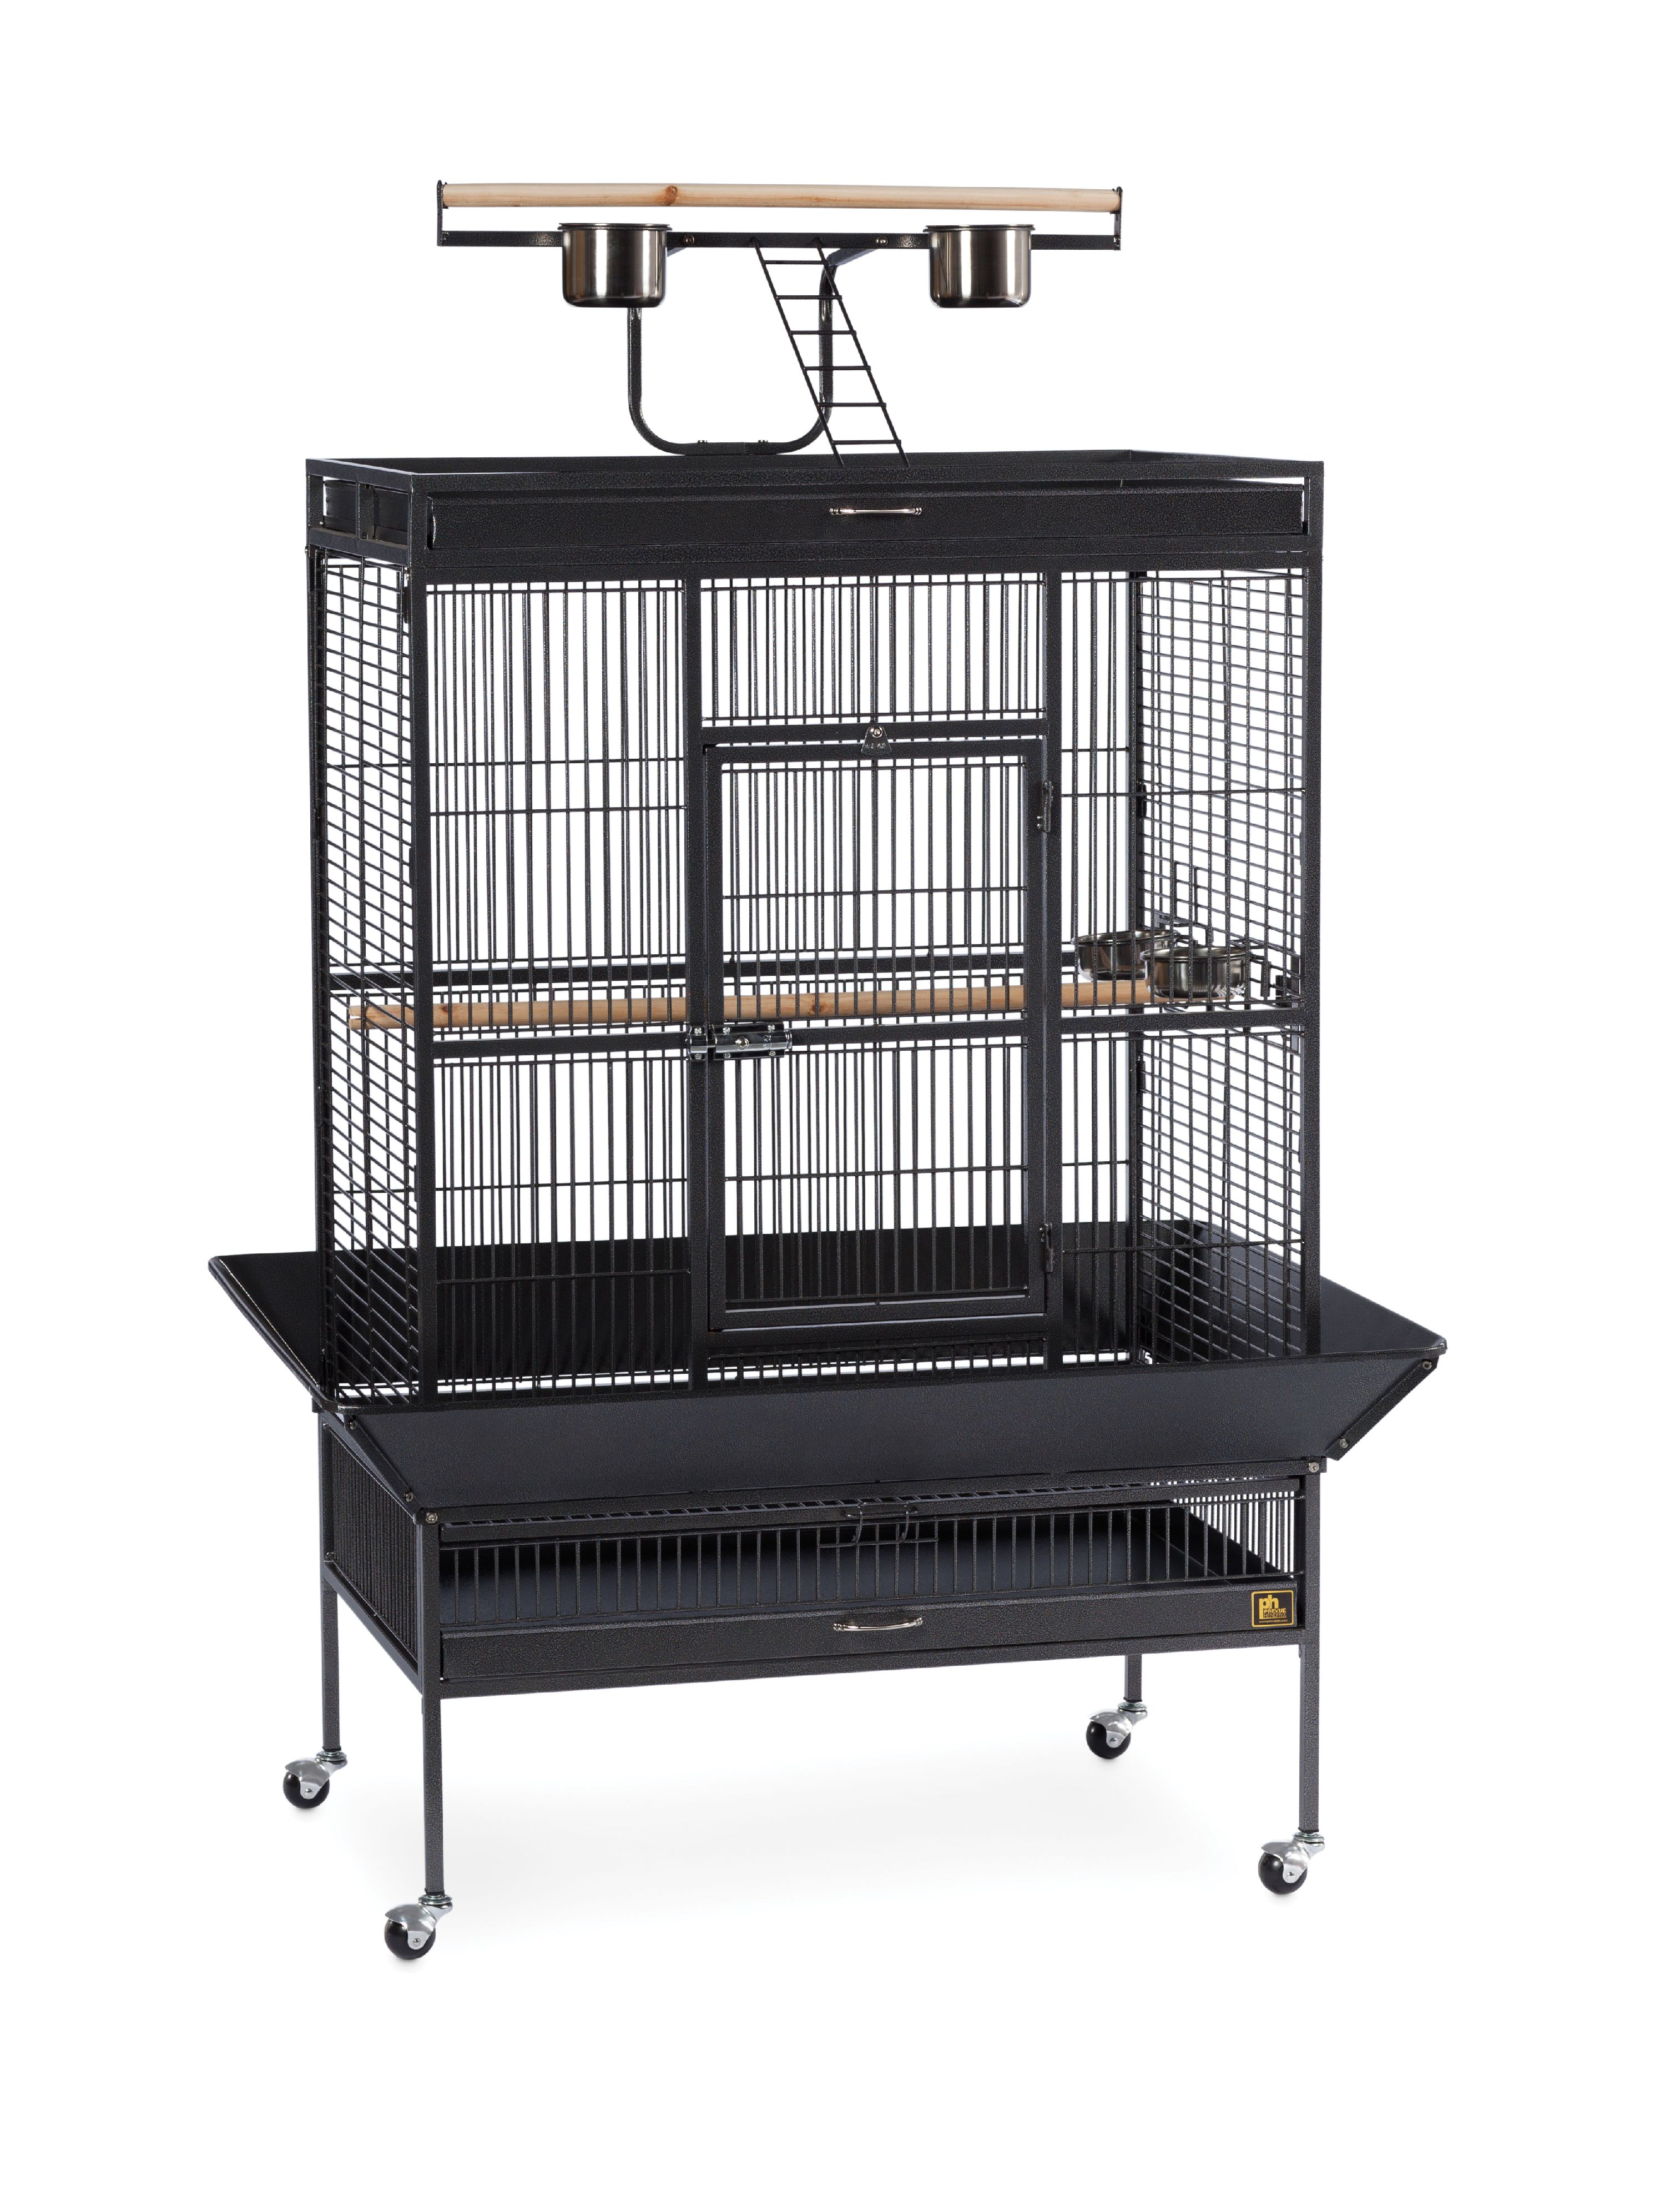 Prevue Pet Products Signature Select Series Wrought Iron Bird Cage Black Hammertone by Prevue Pet